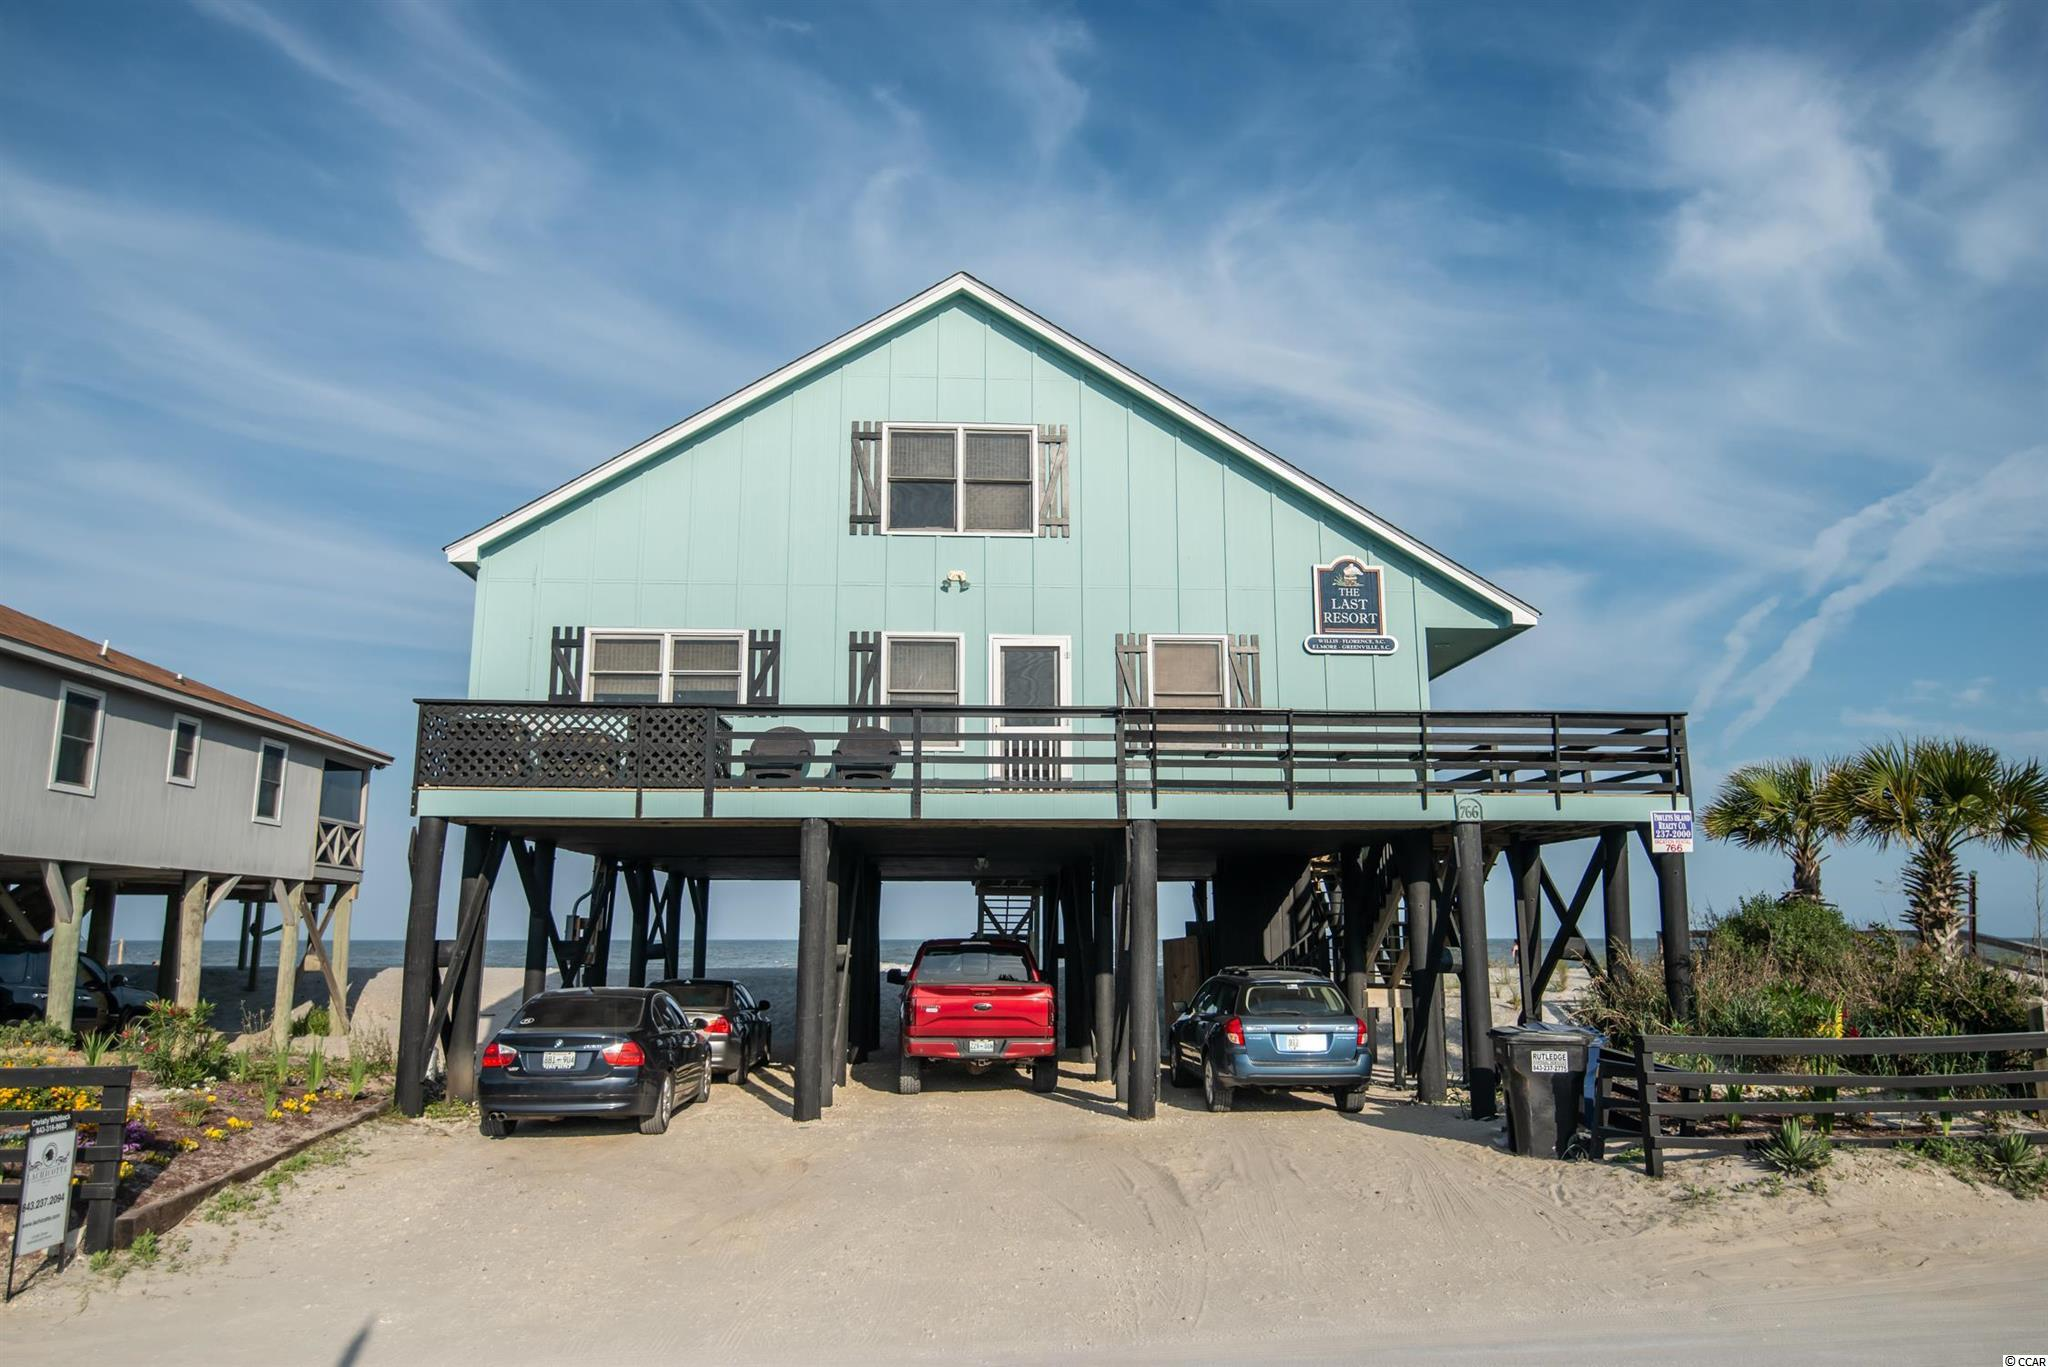 Endless ocean and creek views surround this spectacular Pawleys Island home that is everything you could ask for in a beach house! One of the few extraordinary properties on Pawleys that features an exceptionally large creekfront lot as well as oceanfront, allowing you to enjoy both sides of our treasured island. Boasting 6 spacious, yet cozy, bedrooms and 4 full, roomy bathrooms this home can comfortably accomodate any size family.  Natural light throughout and airy, open living spaces are ideal for entertaining or simply relaxing while overlooking the ocean waves as they roll in. Well thought out kitchen enhanced with lovely granite countertops and stainless steel appliances. Savor the seabreezes while watching family and friends frolic in the creek or on the shore from one of the many large porches throughout.  Full of charm and character, this home is quintessential Pawleys Island! Very rare opportunity as this house has never been available for purchase until now.  Family owned from the beginning and in immaculate condition. Creek dock was built in 2015.  New HVAC systems on both floors. A true gem that encompasses everything that makes Pawleys Island Pawleys!